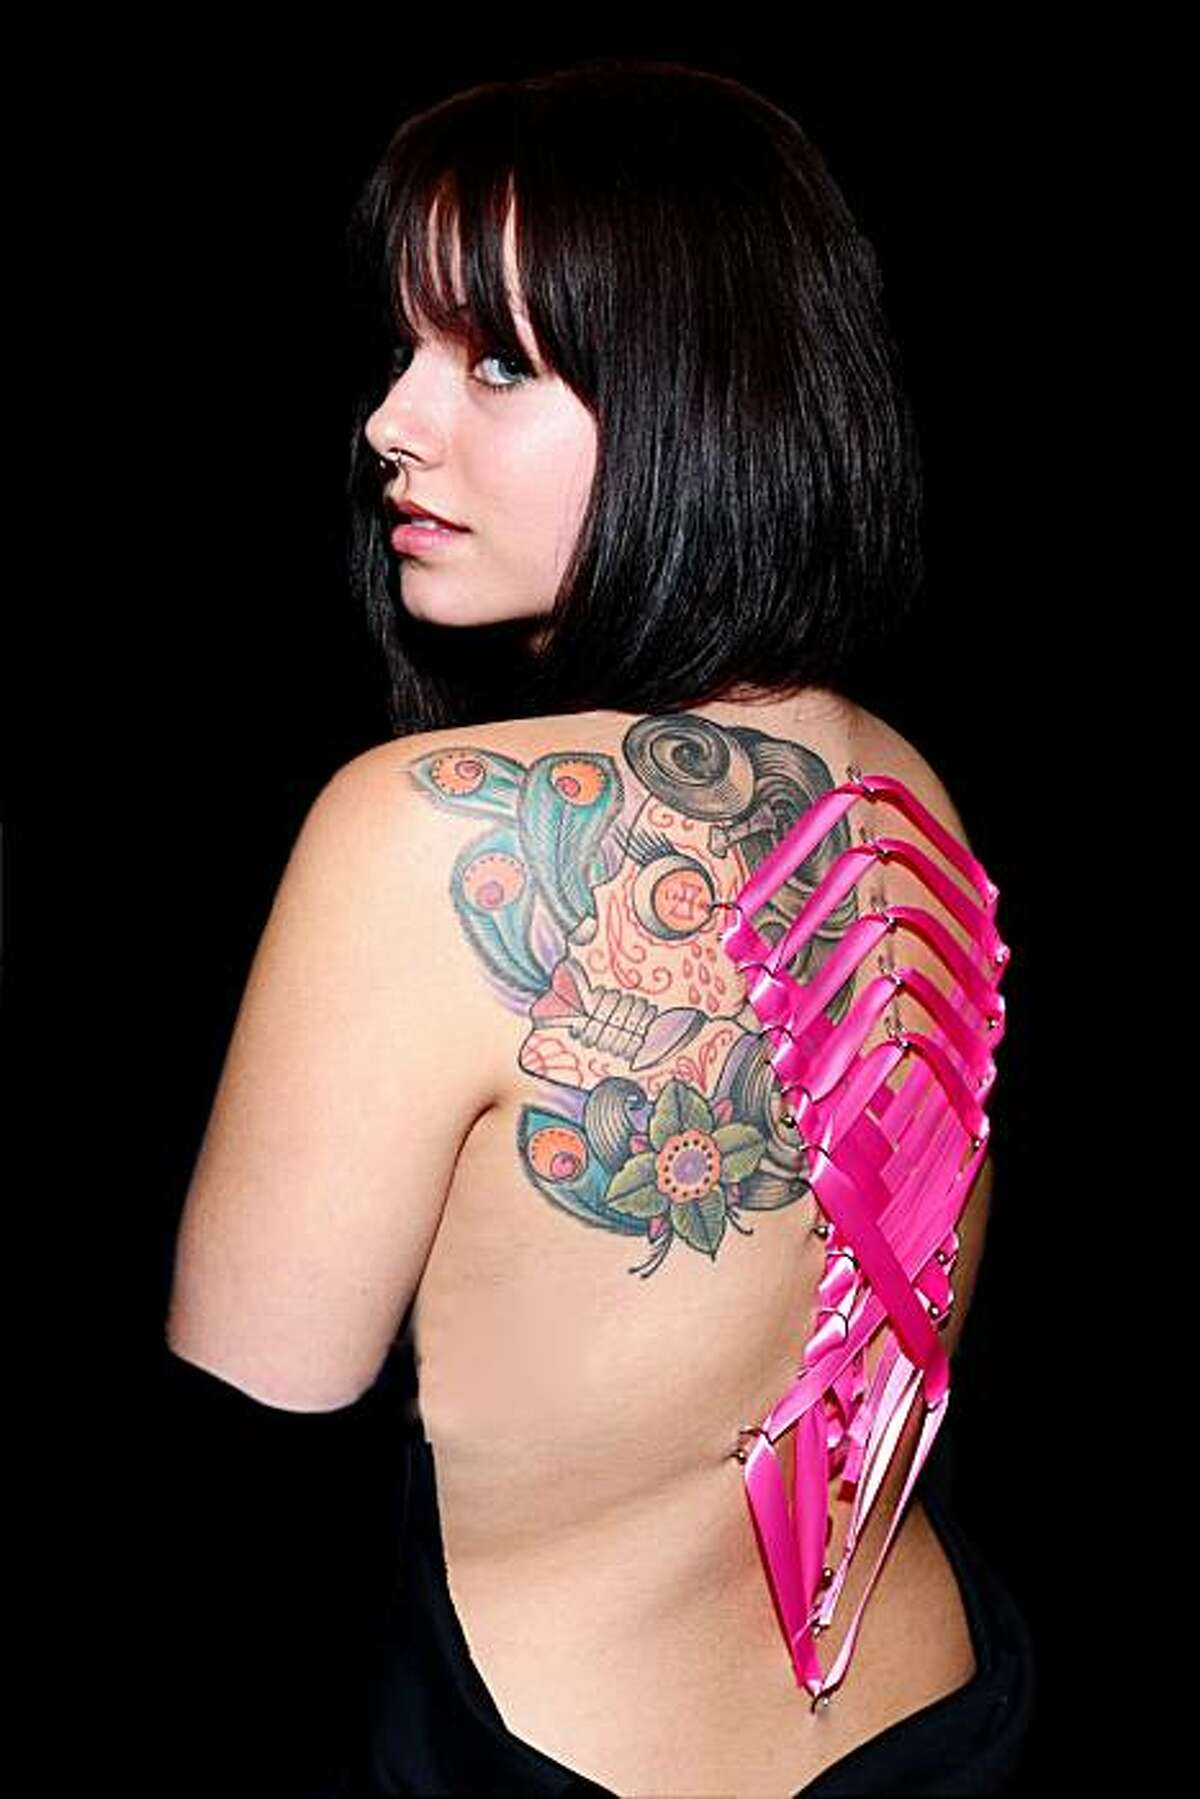 Monique Millier of San Jose models a corset piercing at the Body Art Expo in San Francisco and August. It is the second time she has had her back pierced and laced.